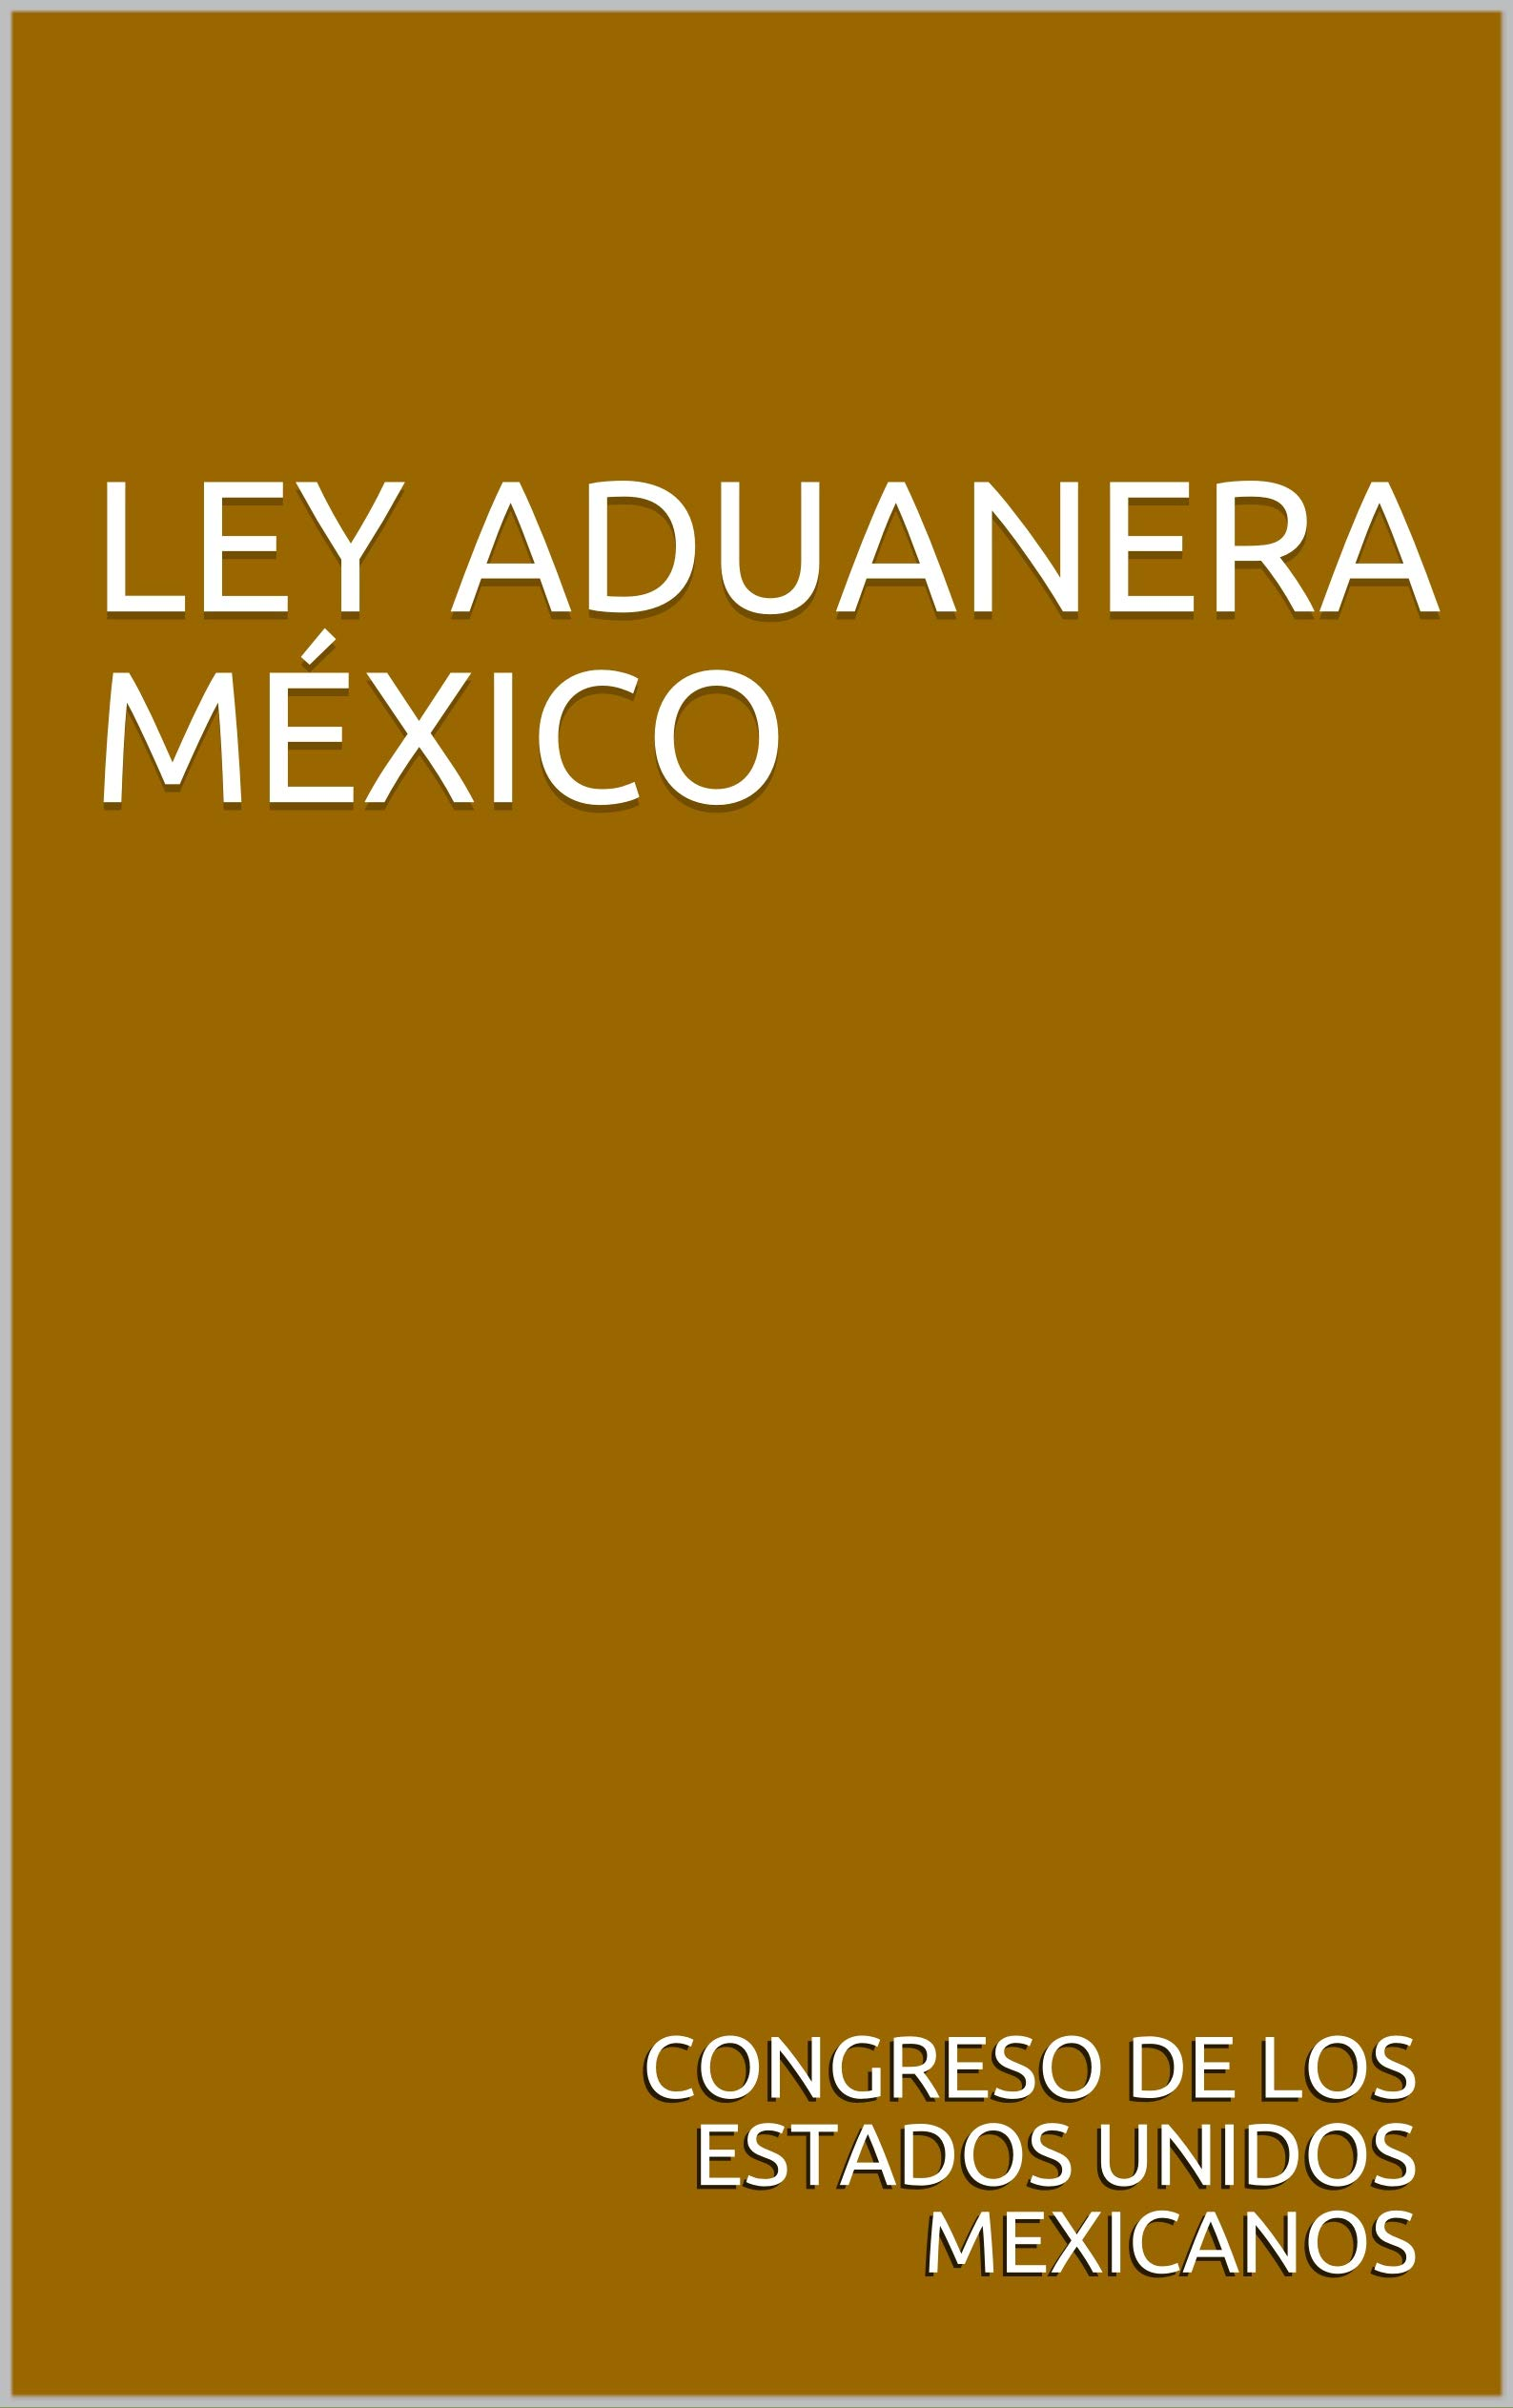 LEY ADUANERA MÉXICO (Spanish Edition)